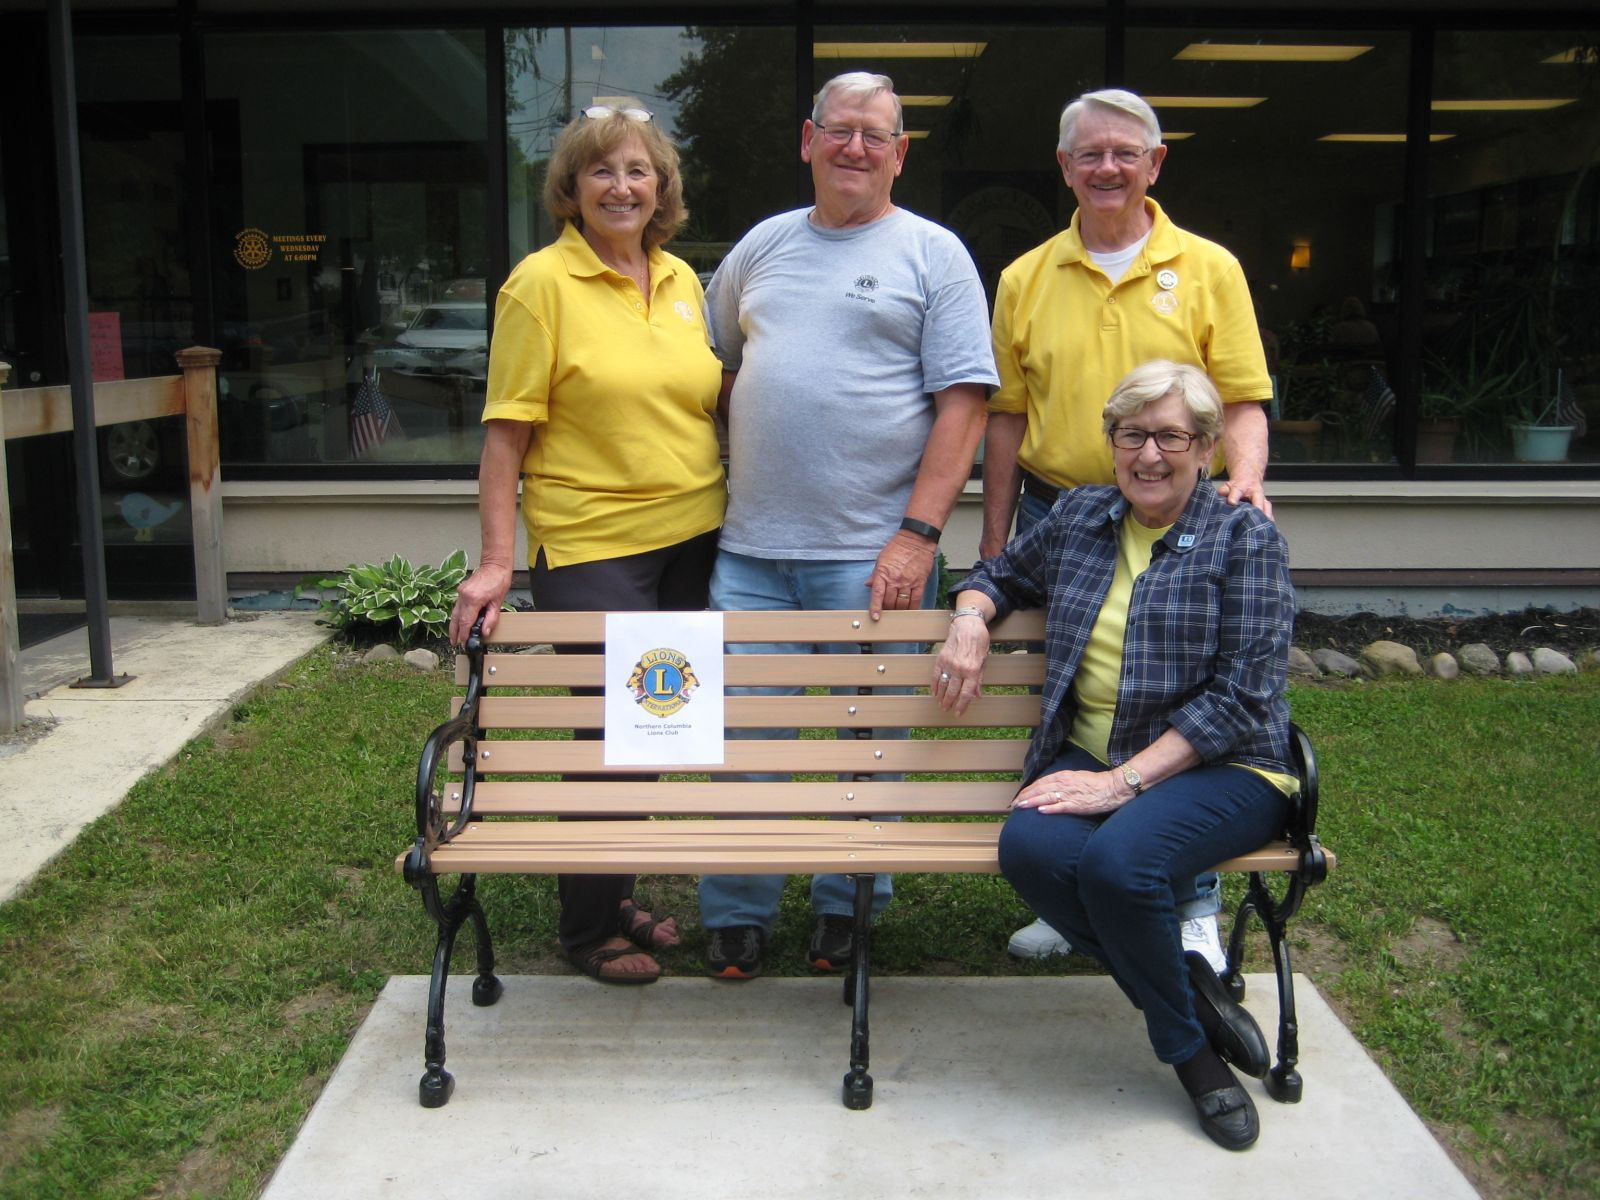 The Northern Columbia Lions Club donated this bench to the senior center in Valatie, commemorating 100 years of International Lionism.  Members of the committee pictured are Donna Francis, Chuck Albertson, Al and Mimi Johnson. Absent from the photo are Dot Hotaling and Tony Spensieri.